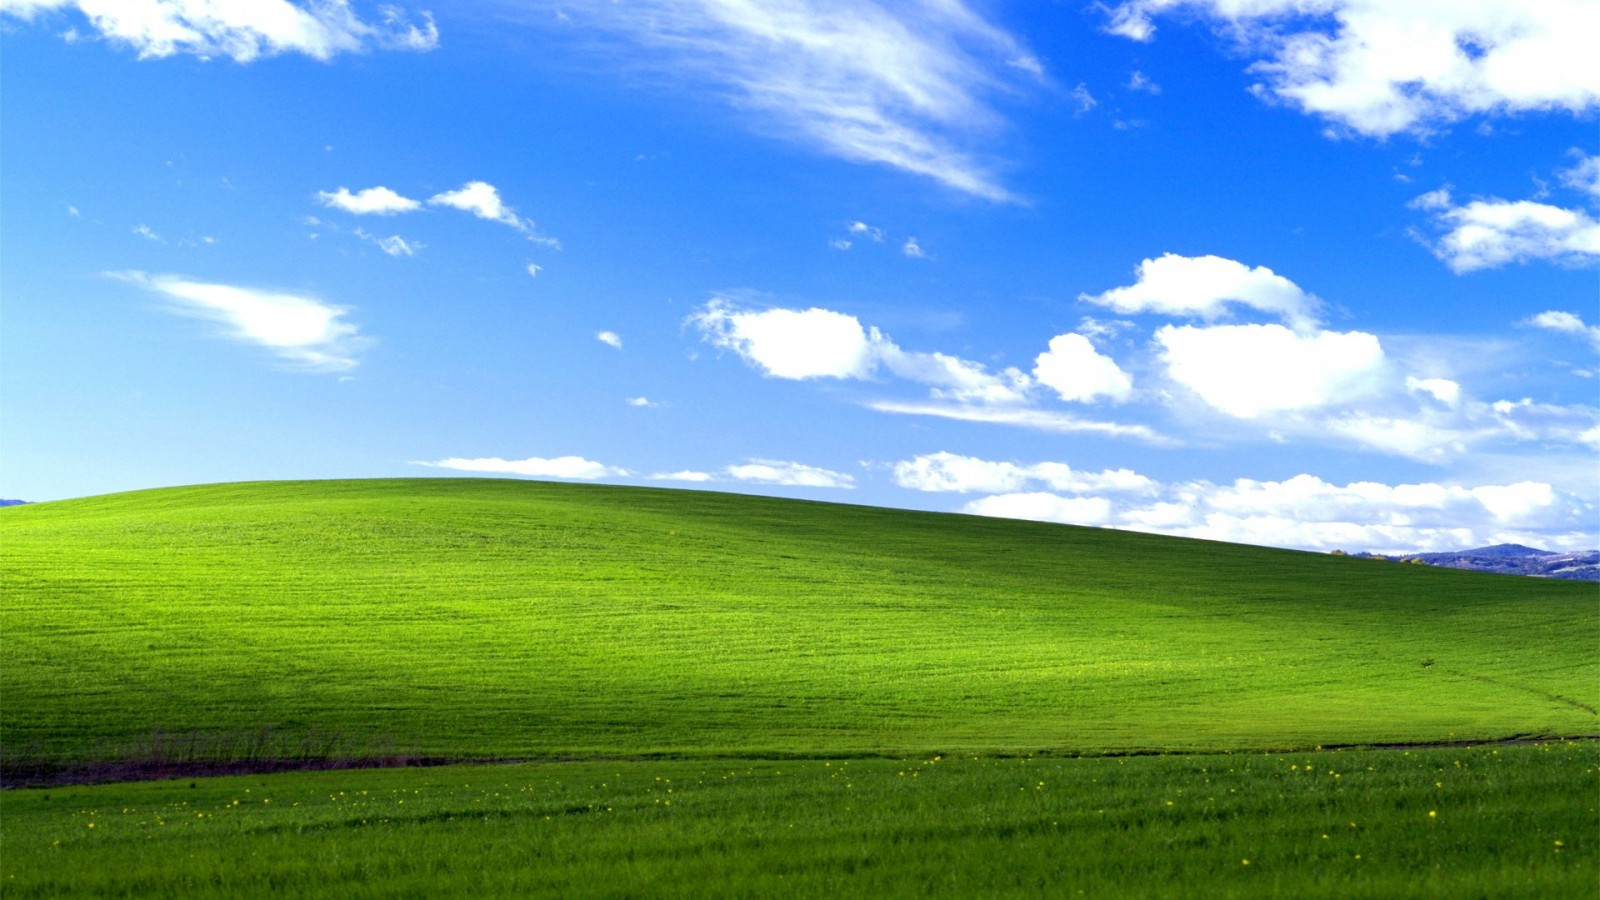 Classic Windows Xp Computer Wallpaper Background Wallpapers 1600x900